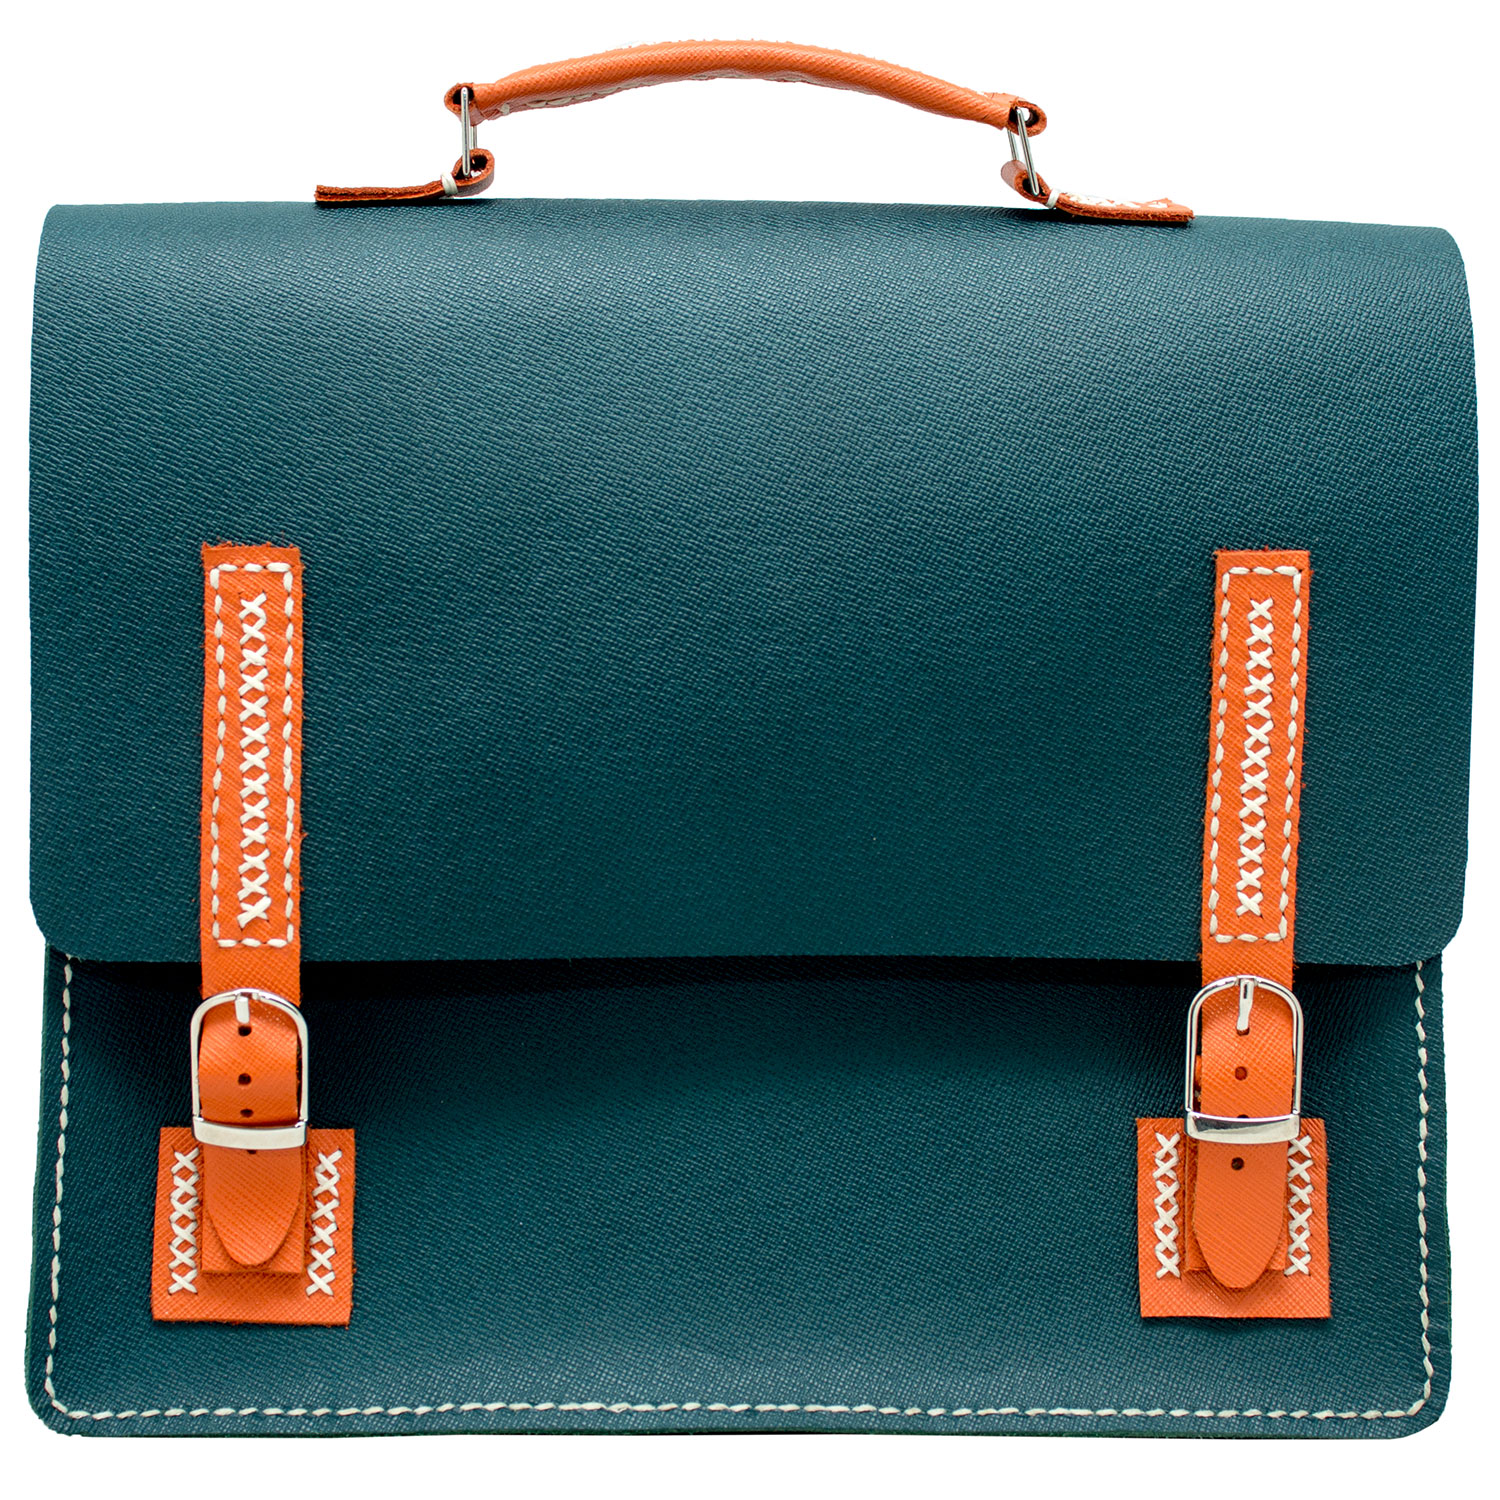 Woman-handmade-hand-stitched-etno-bag-shoulder-crossbody-satchel-briefcase-green[1]